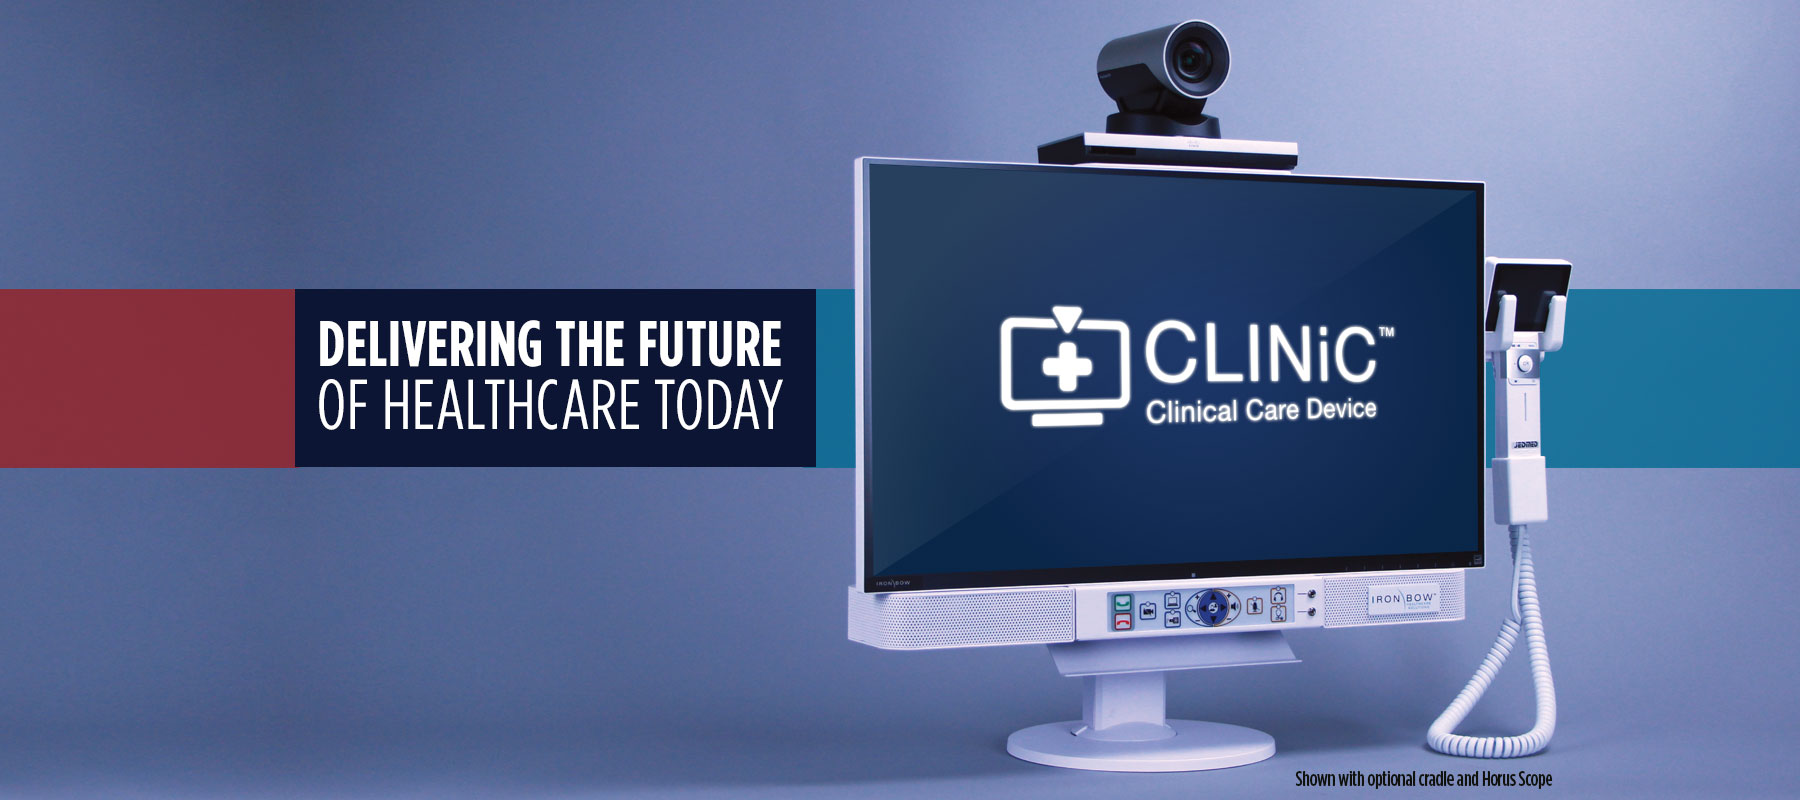 Delivering the future of healthcare today.